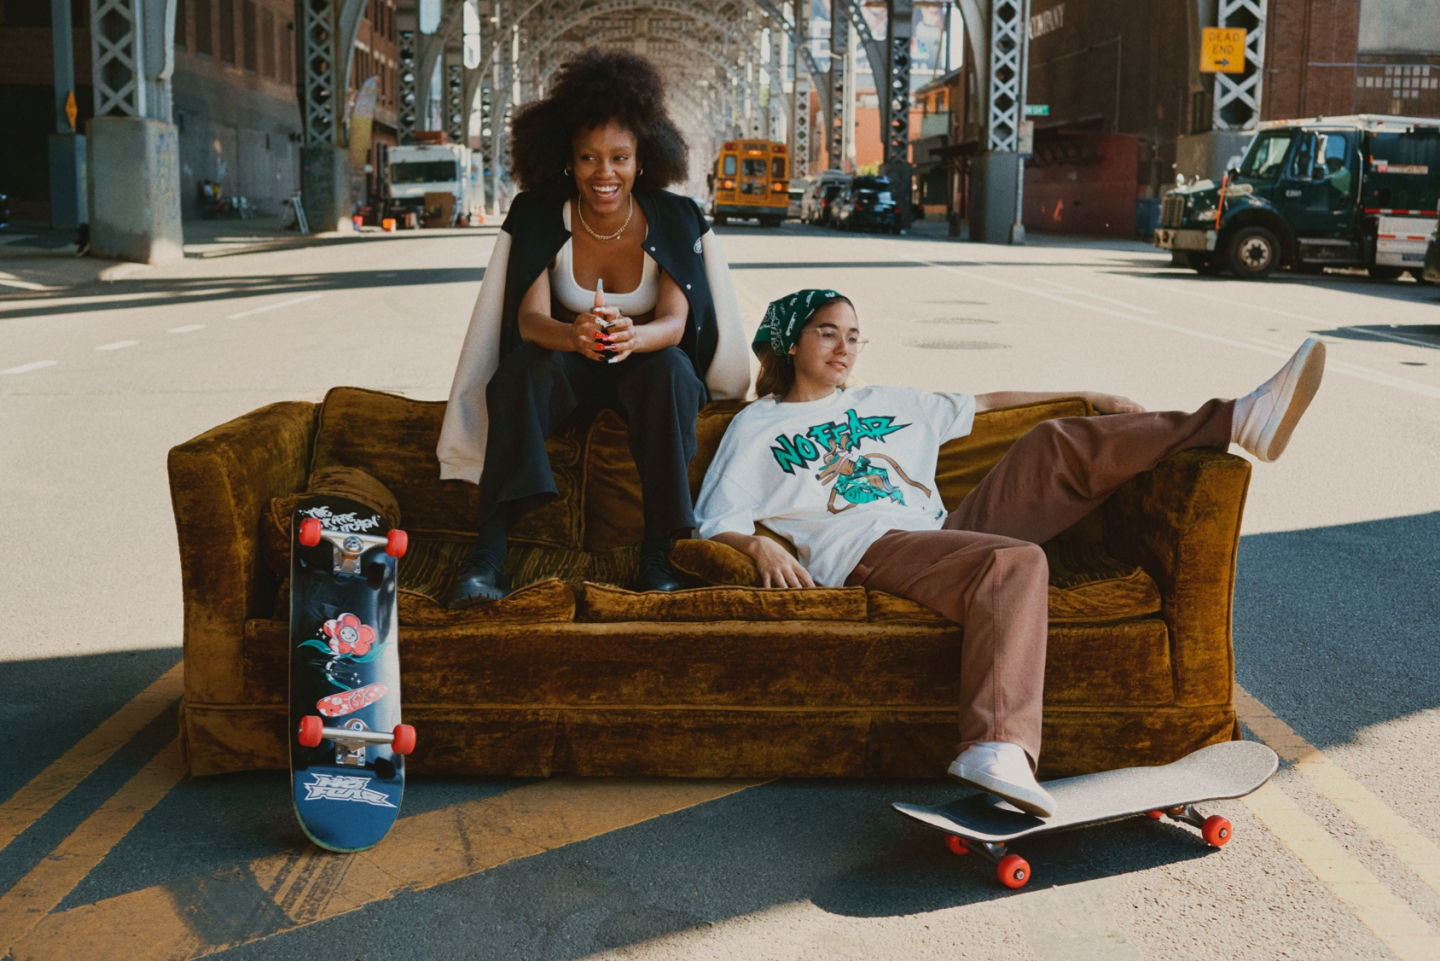 H&M collaborates with No Fear and The Skate Kitchen